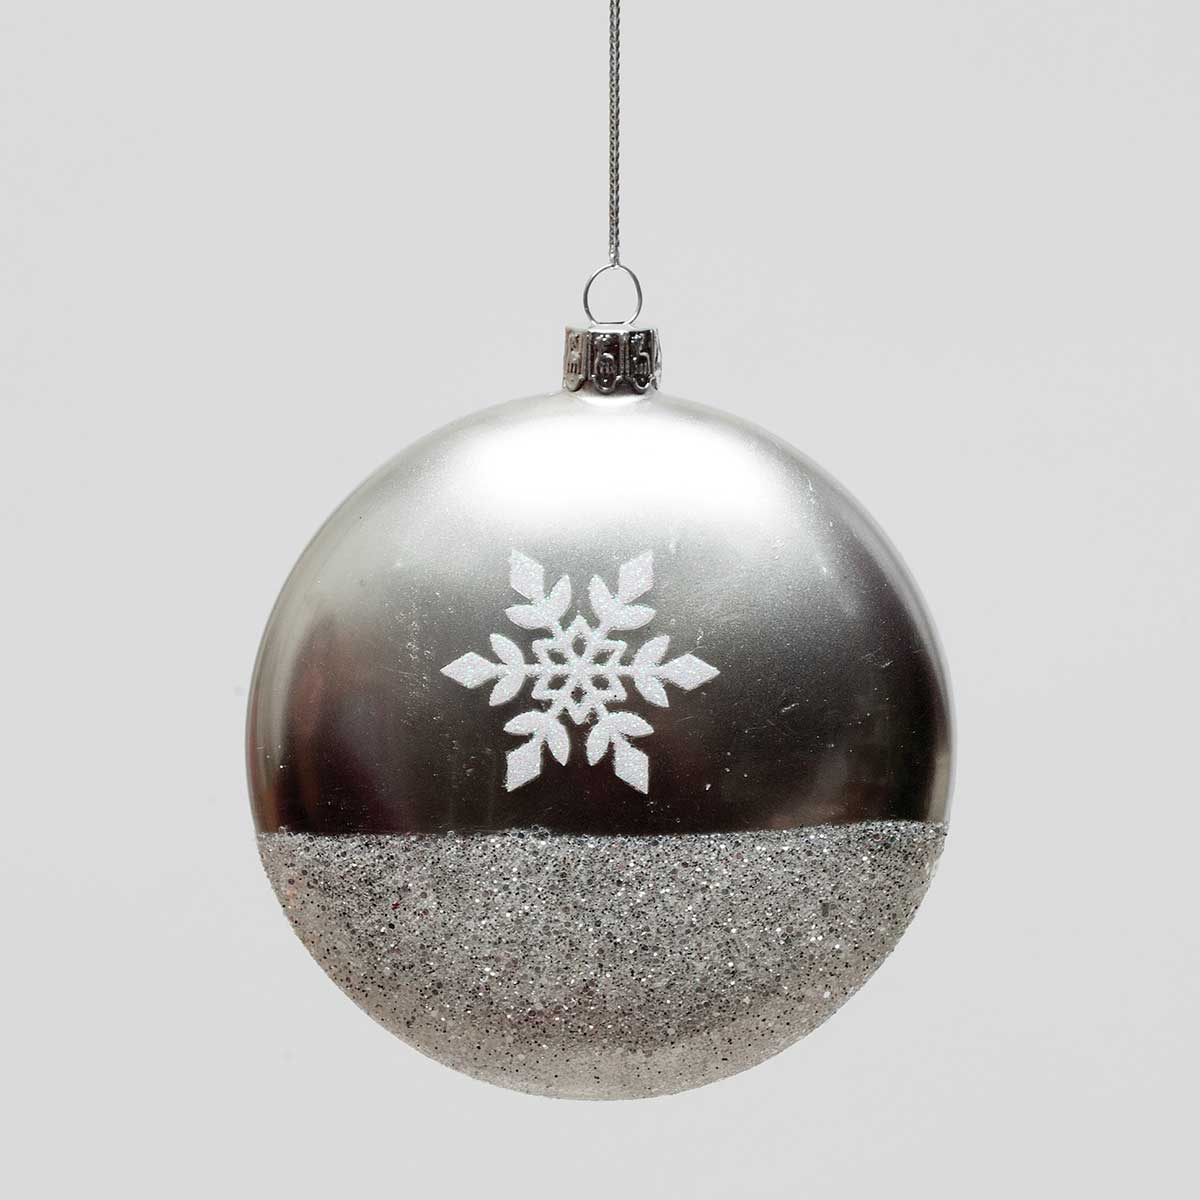 SILVER SNOWFLAKE GLASS